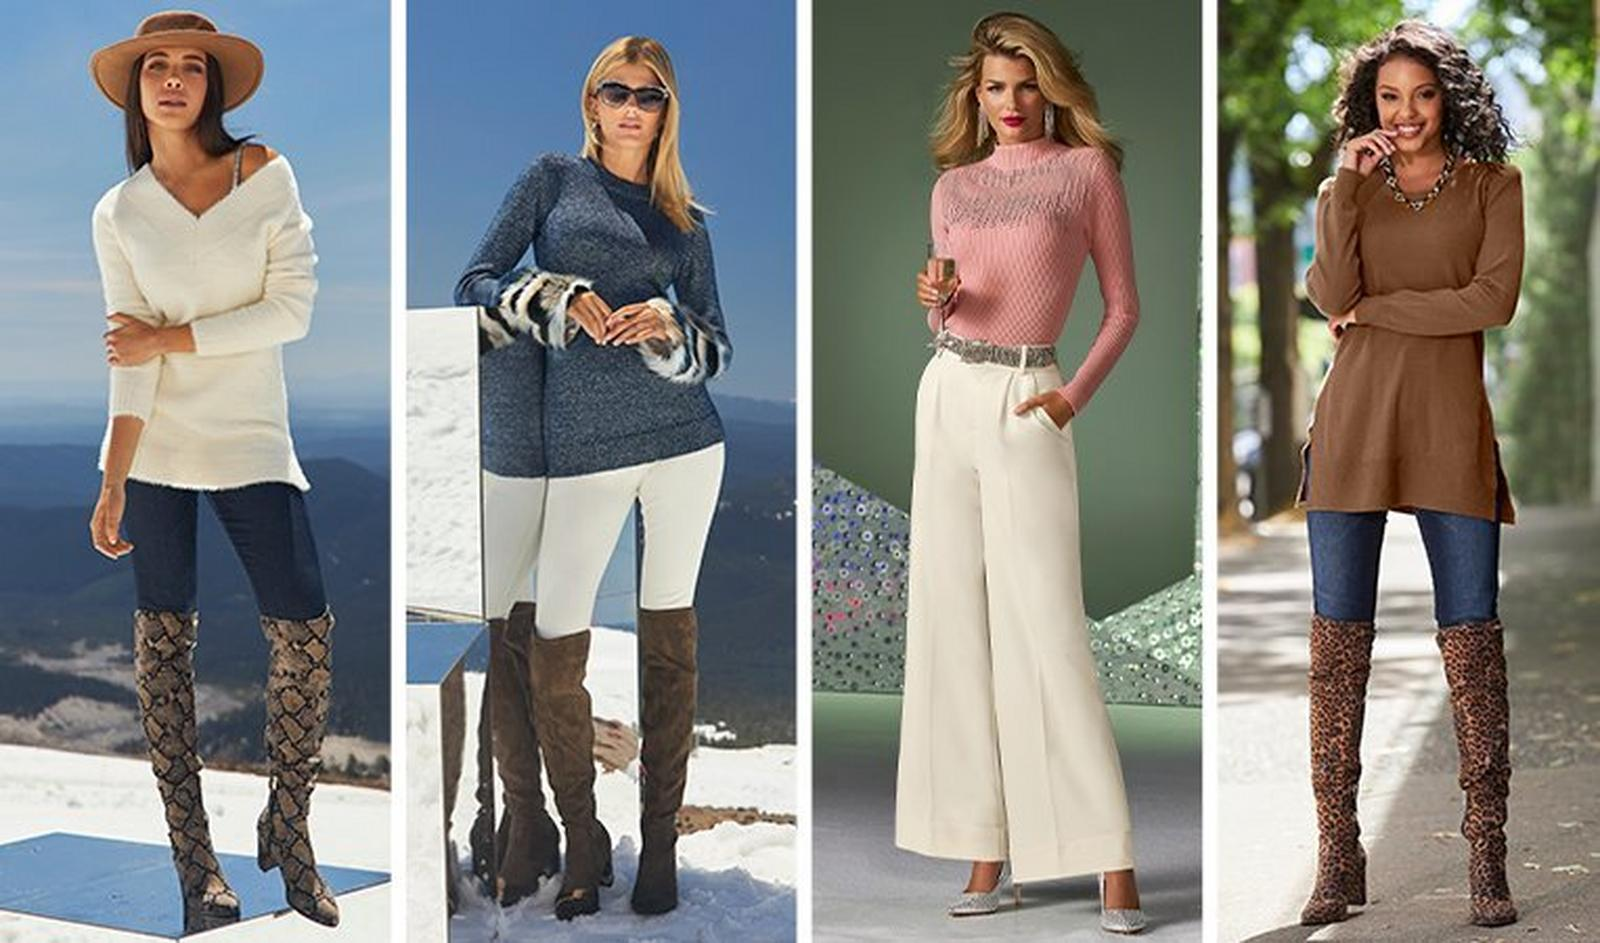 from left to right: model wearing a white v-neck sweater, denim stirrup leggings, python print over-the-knee boots, and a brown felt hat. next model wearing a blue sweater with multicolored faux-fur cuffs, white leggings, and brown over-the-knee boots. next model wearing a pink ribbed mock neck sweater with rhinestone embellishments, white wide-leg pants, silver chain belt, pearl strand earrings, and silver rhinestone embellished pumps. last model wearing a brown puff-sleeve sweater, denim stirrup leggings, and leopard print over-the-knee boots.